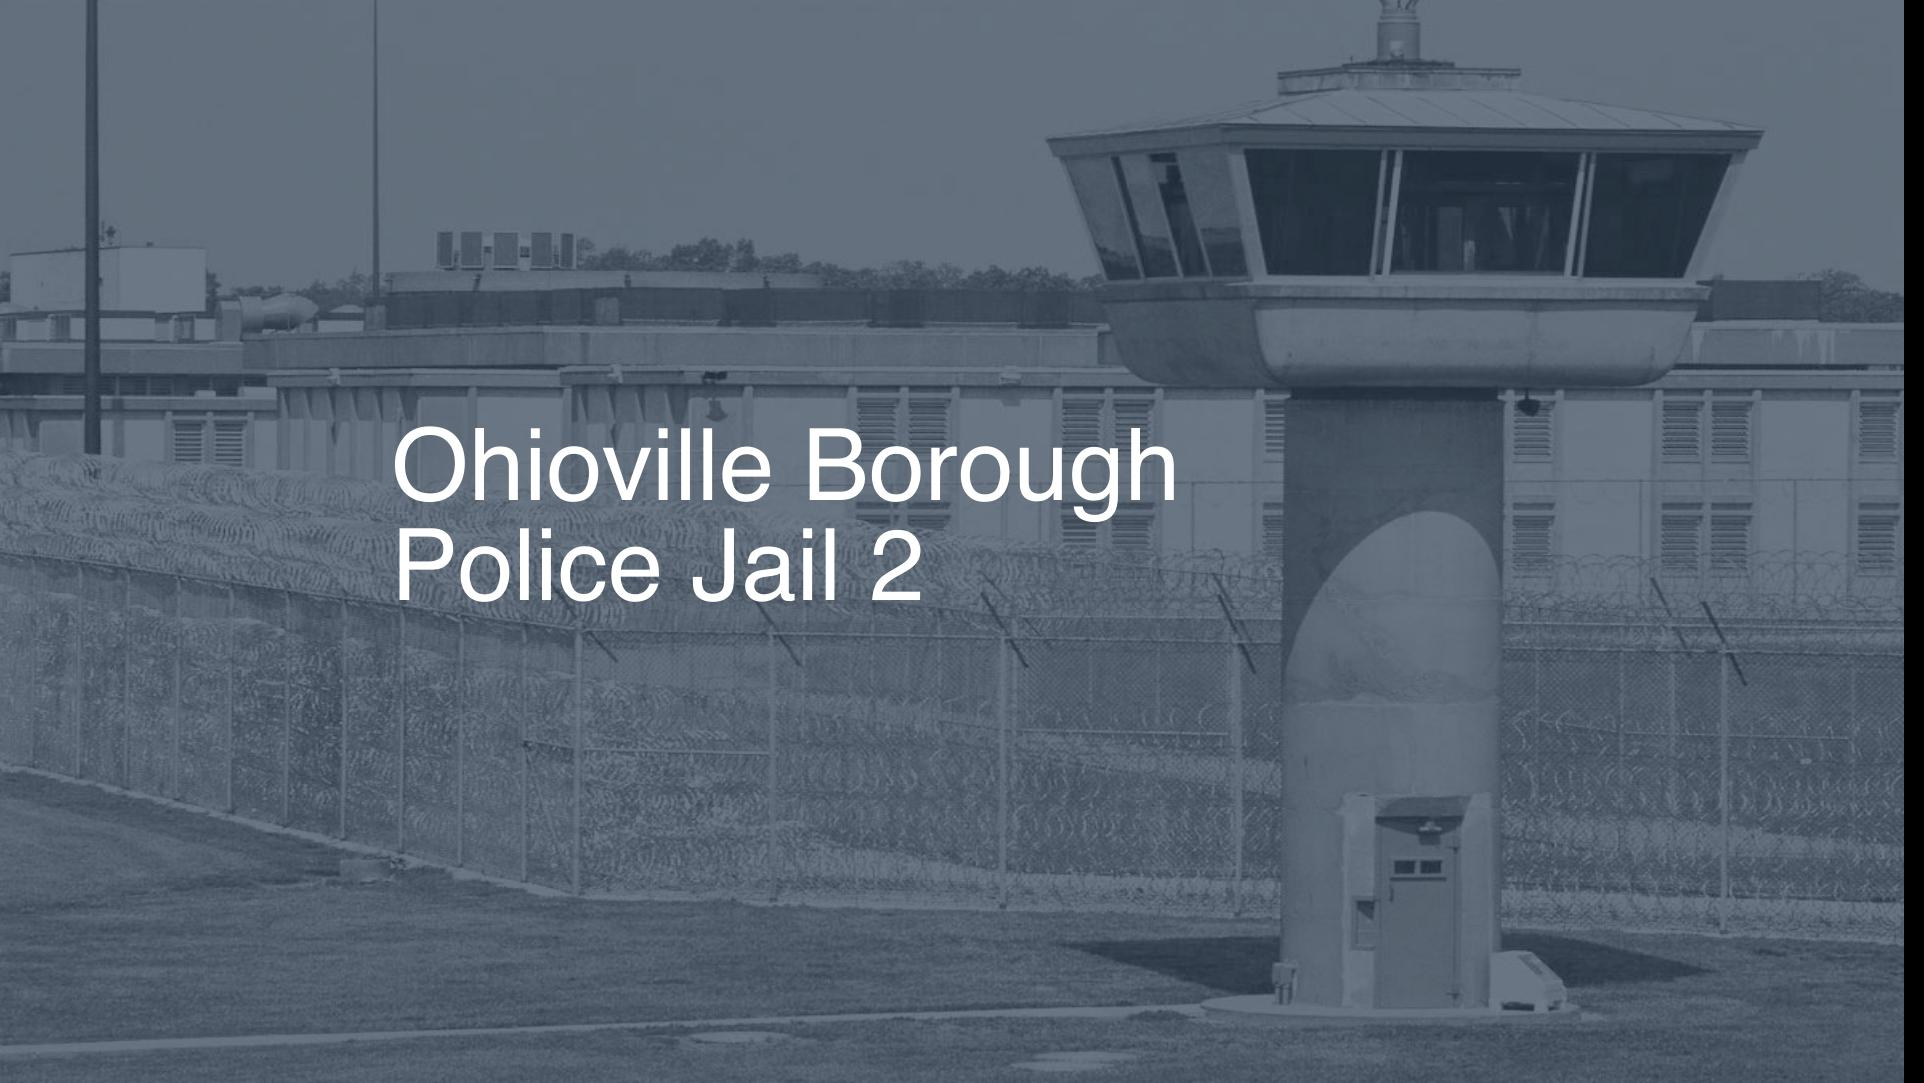 Ohioville Borough Police Jail correctional facility picture